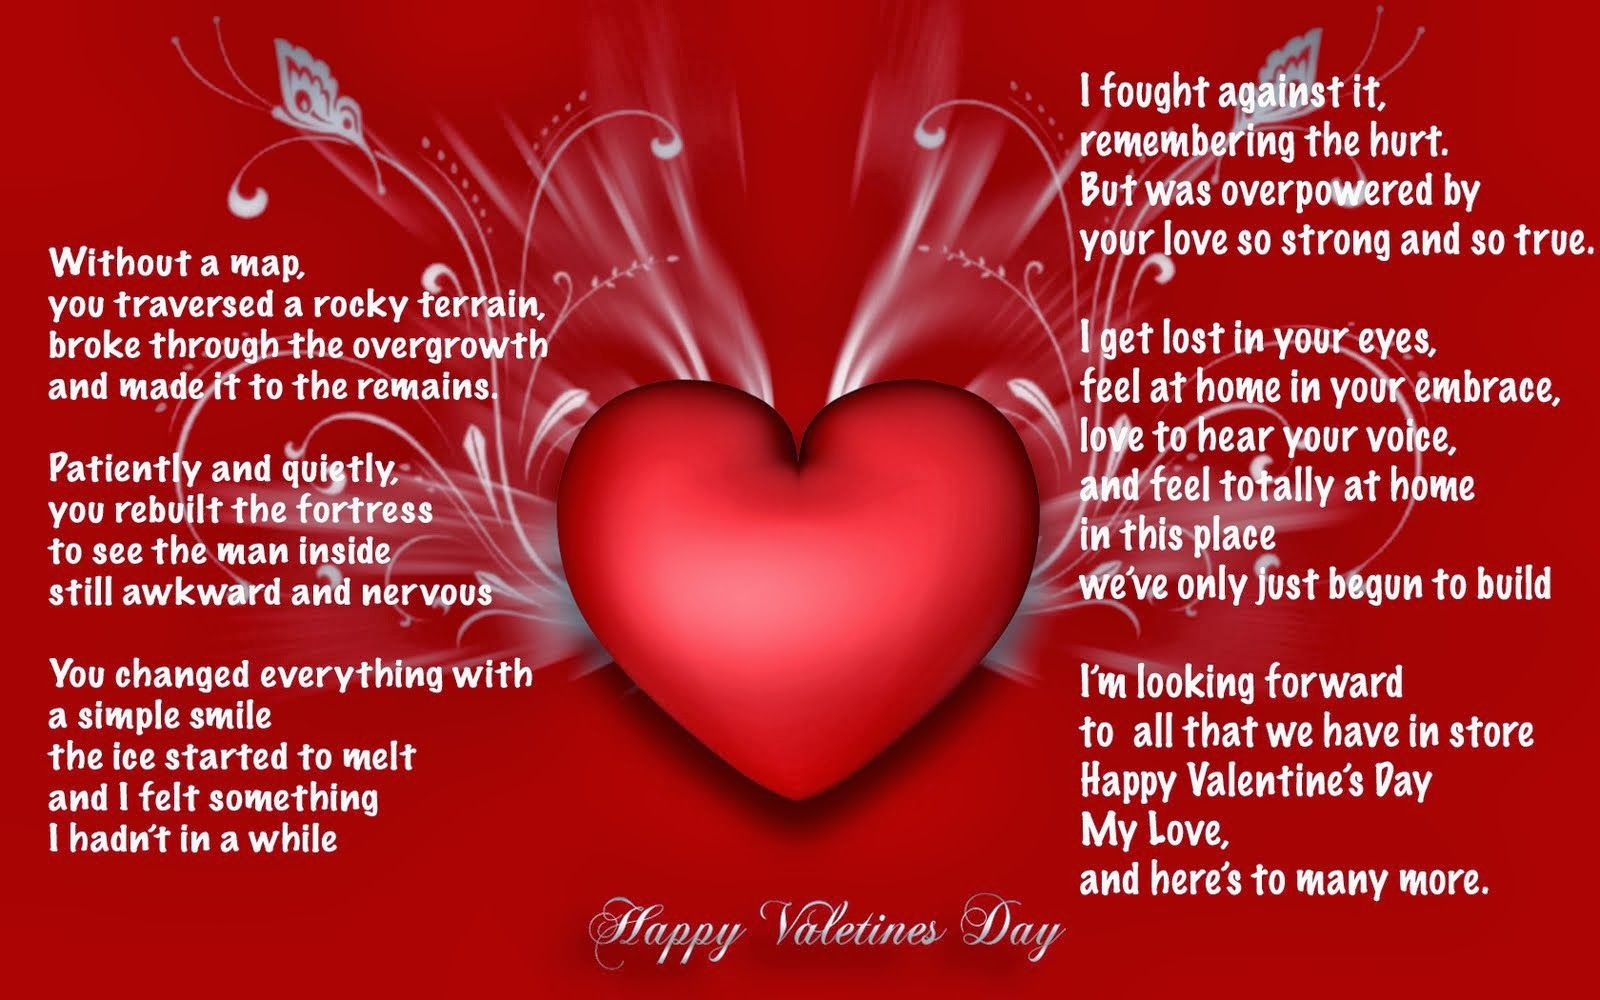 valentines day sayings quotes cheesy cute funny 2014 – Most Beautiful Valentine Cards